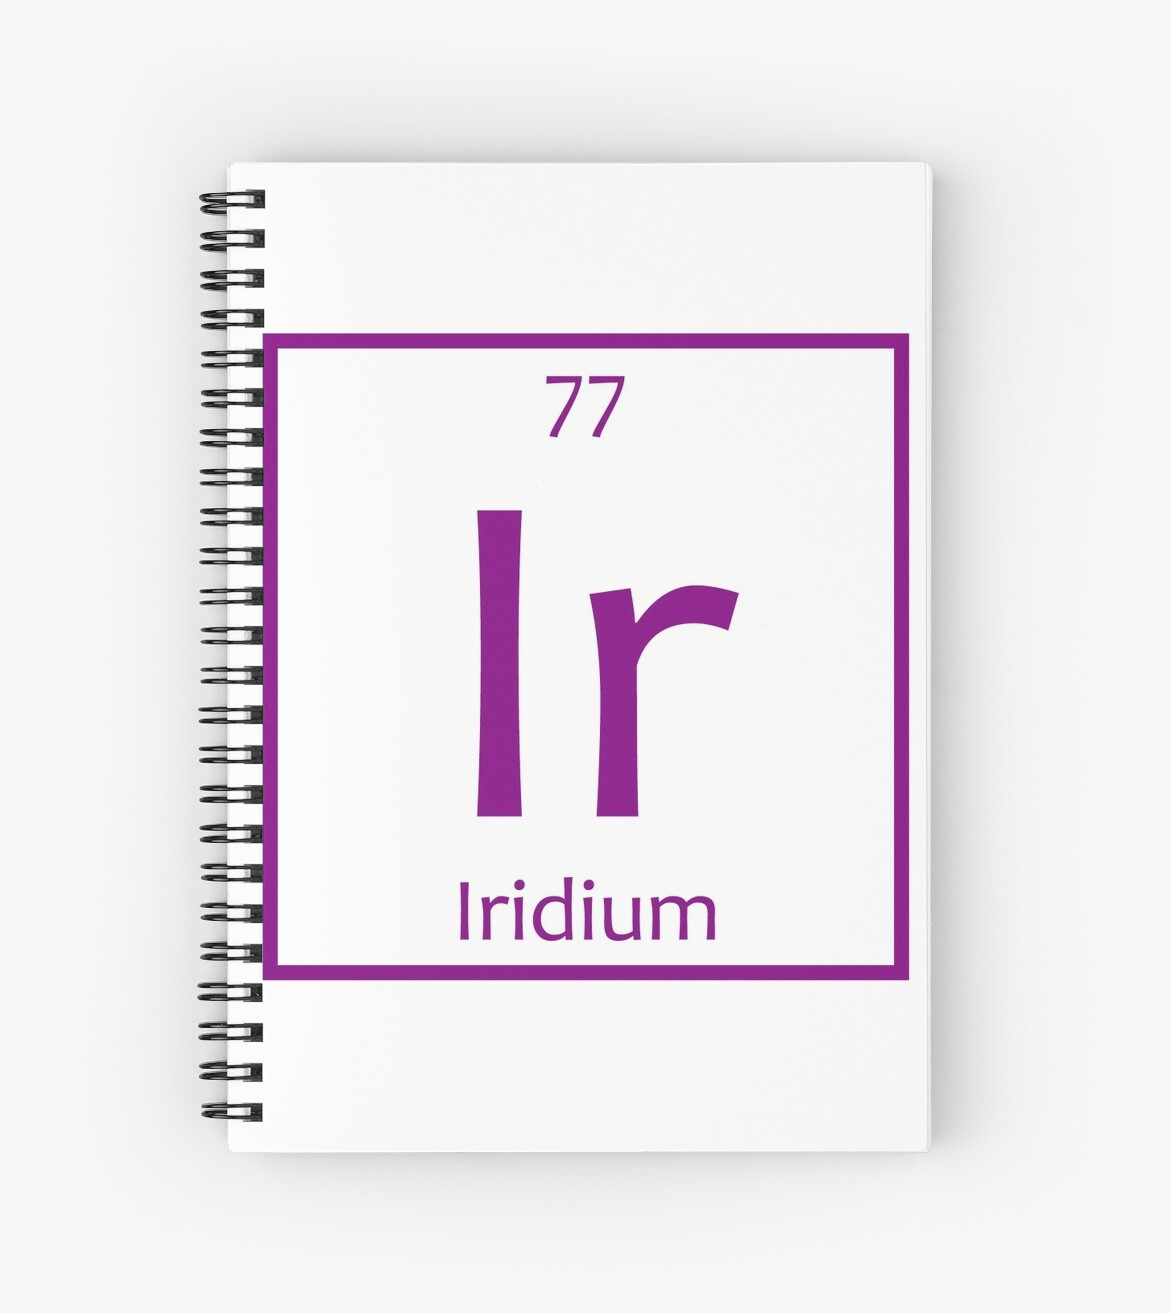 Iridium Ir Chemical Symbol Spiral Notebooks By The Elements